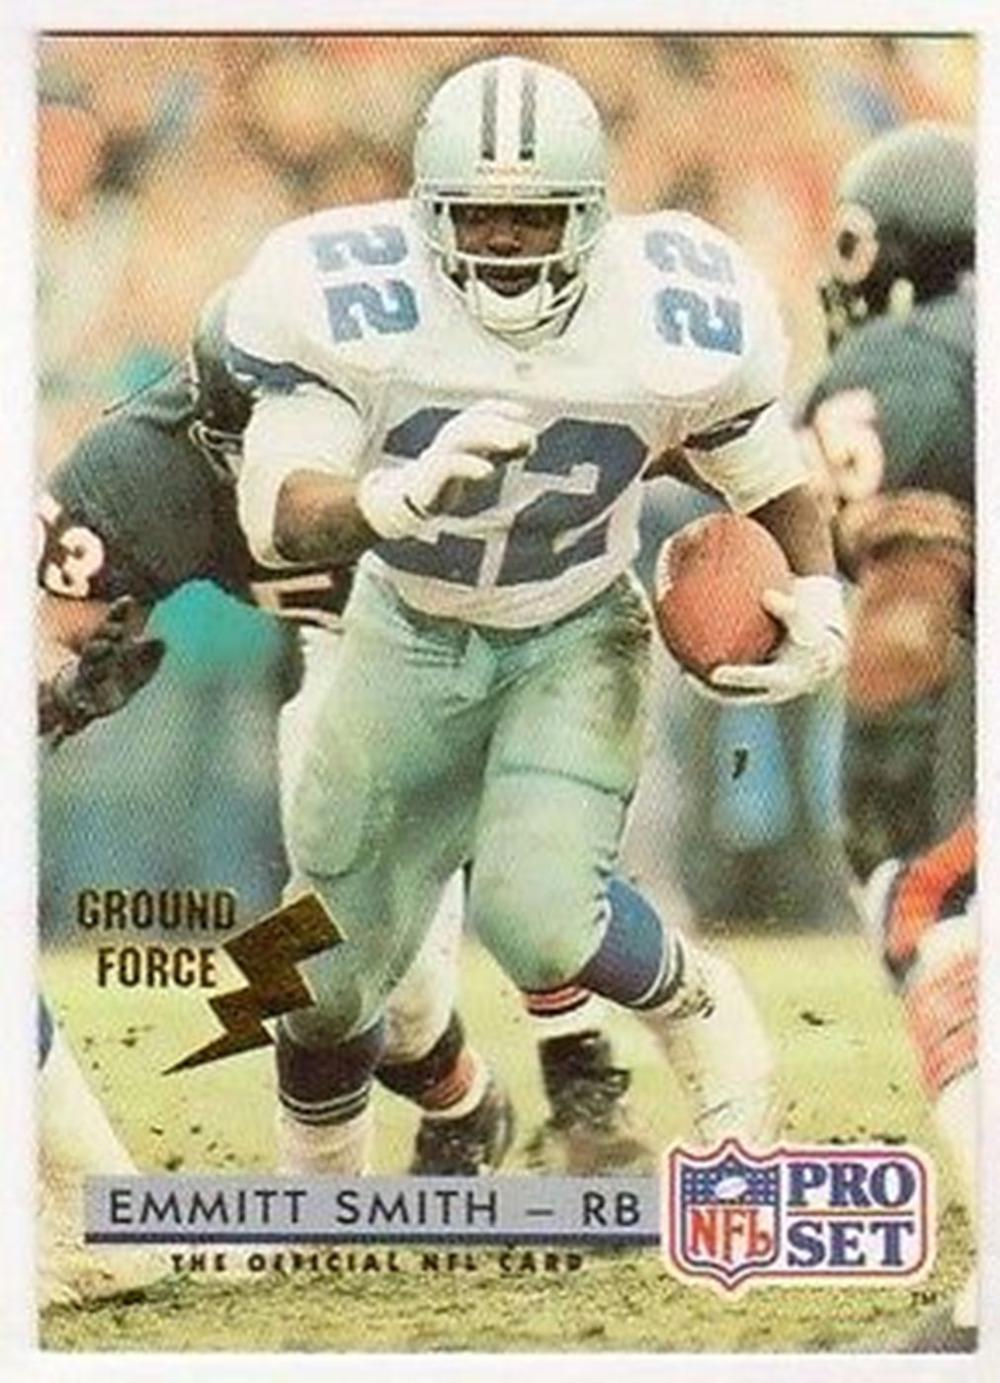 1992 Pro Set Ground Force Emmitt Smith #150 Insert Card